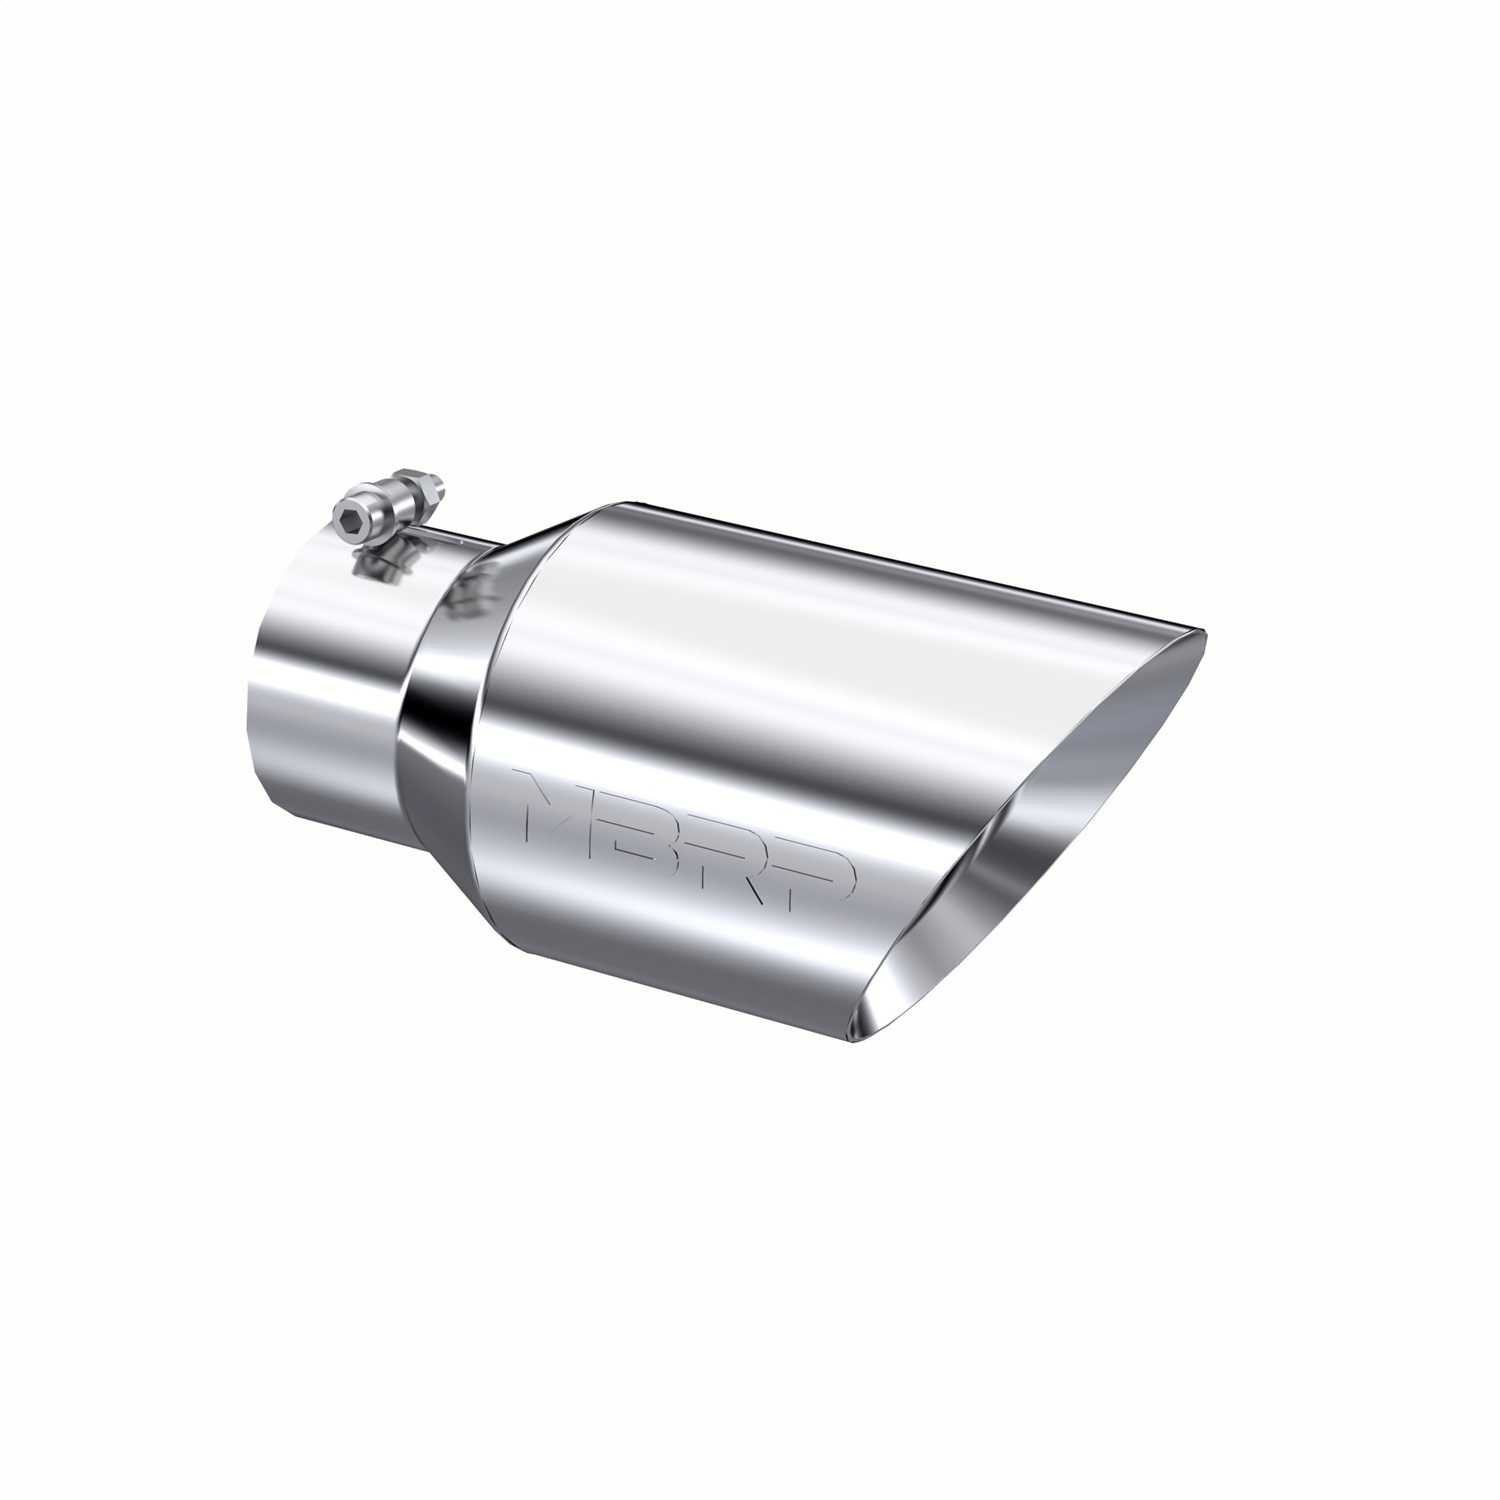 MBRP Exhaust Exhaust Tail Pipe Tip (T5072)